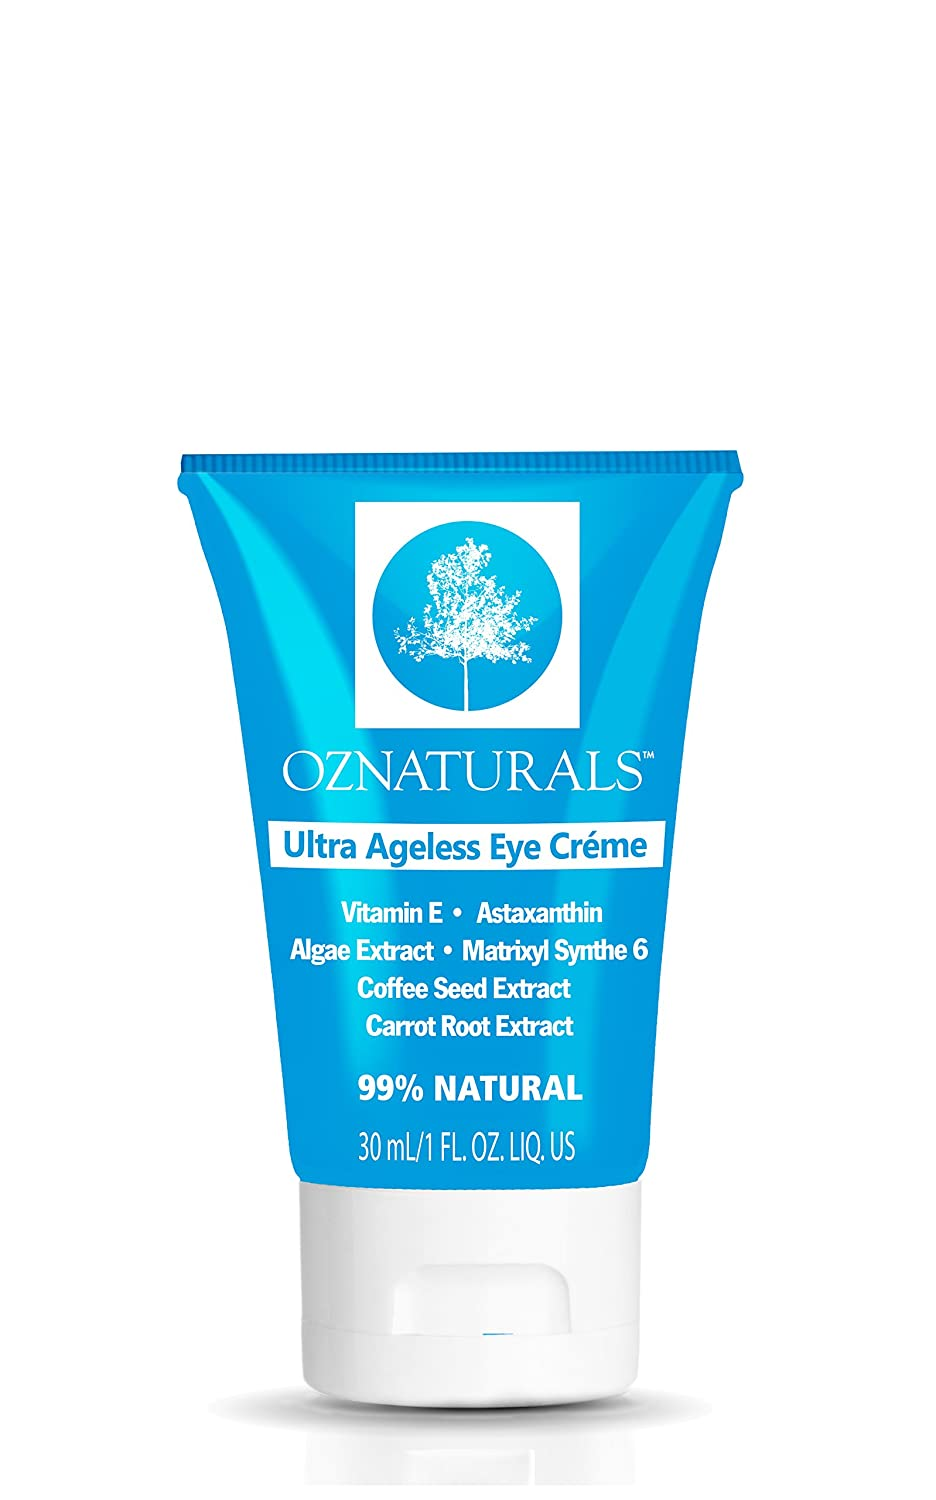 5. OZNaturals Ultra Ageless Eye Cream